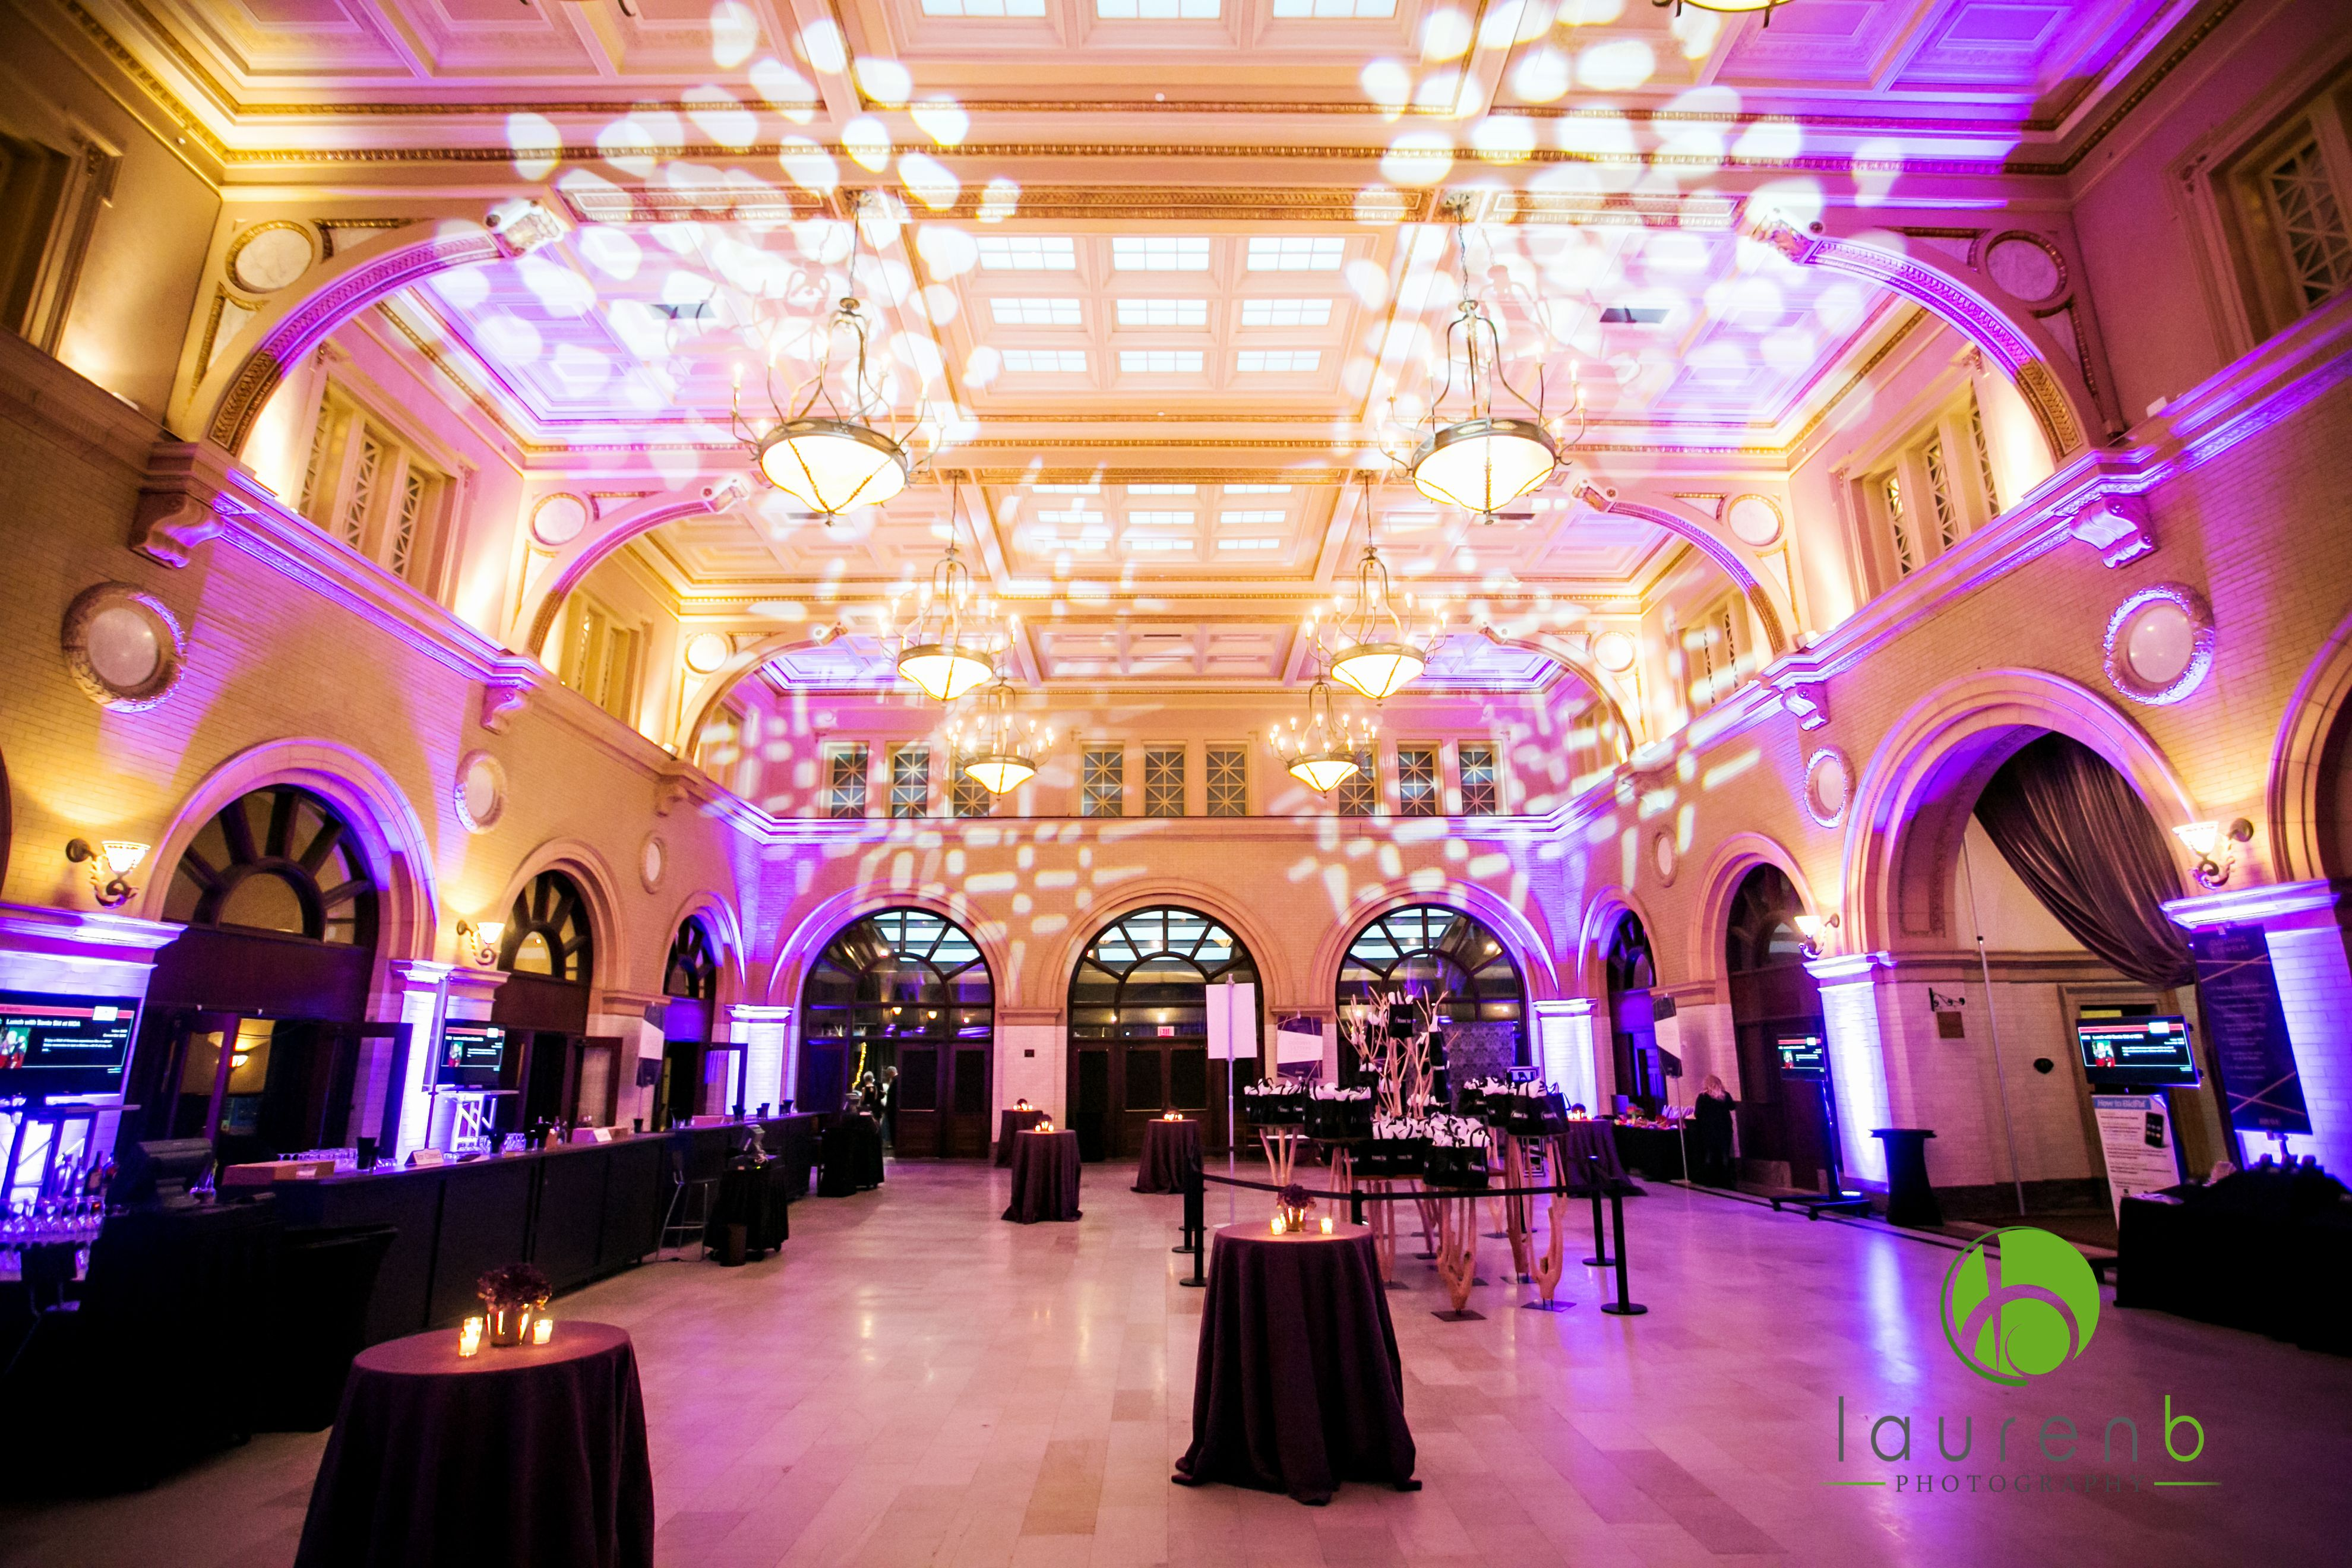 Lauren B Photography of the Great Hall @ The Renaissance Mpls Hotel, The  Depot http://www.marriott.com/hotels/trave…   Minneapolis hotels,  Minneapolis events, Hotel